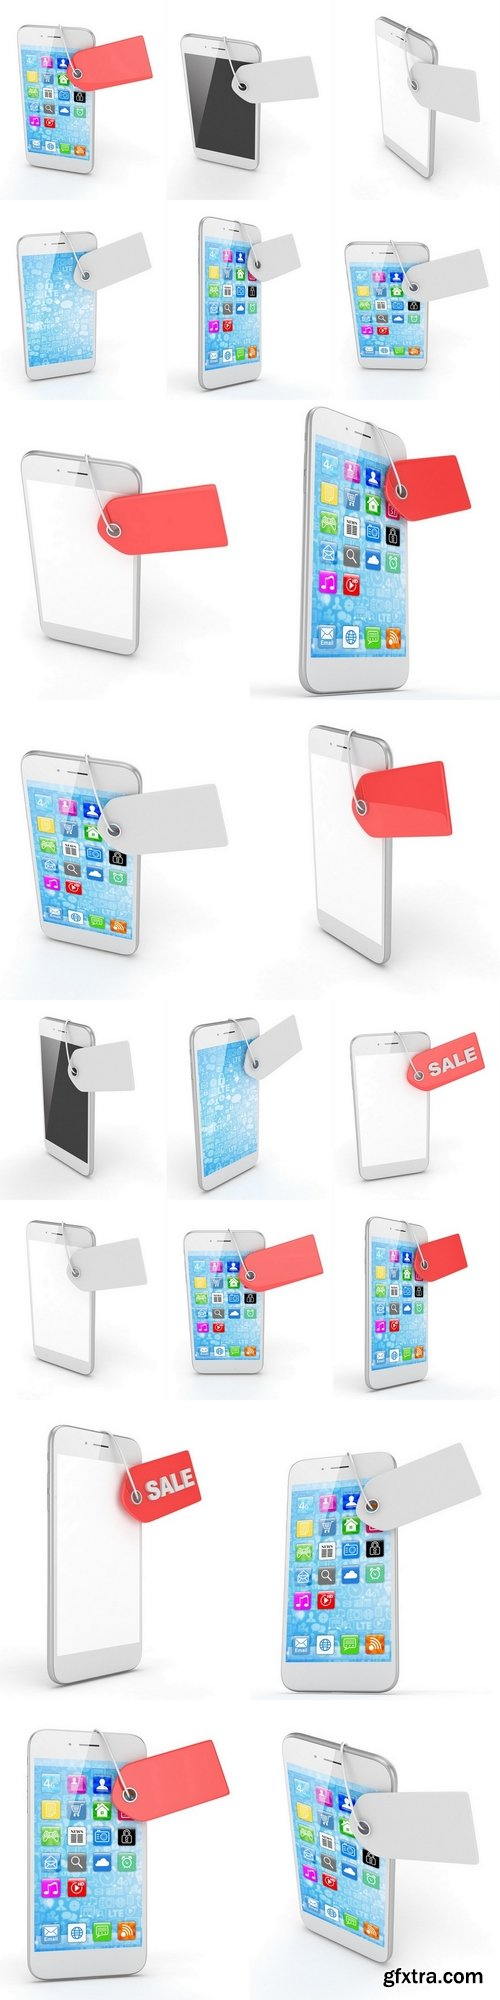 White smart phone with red price tag on white background. Identification, price, label. 3D rendering